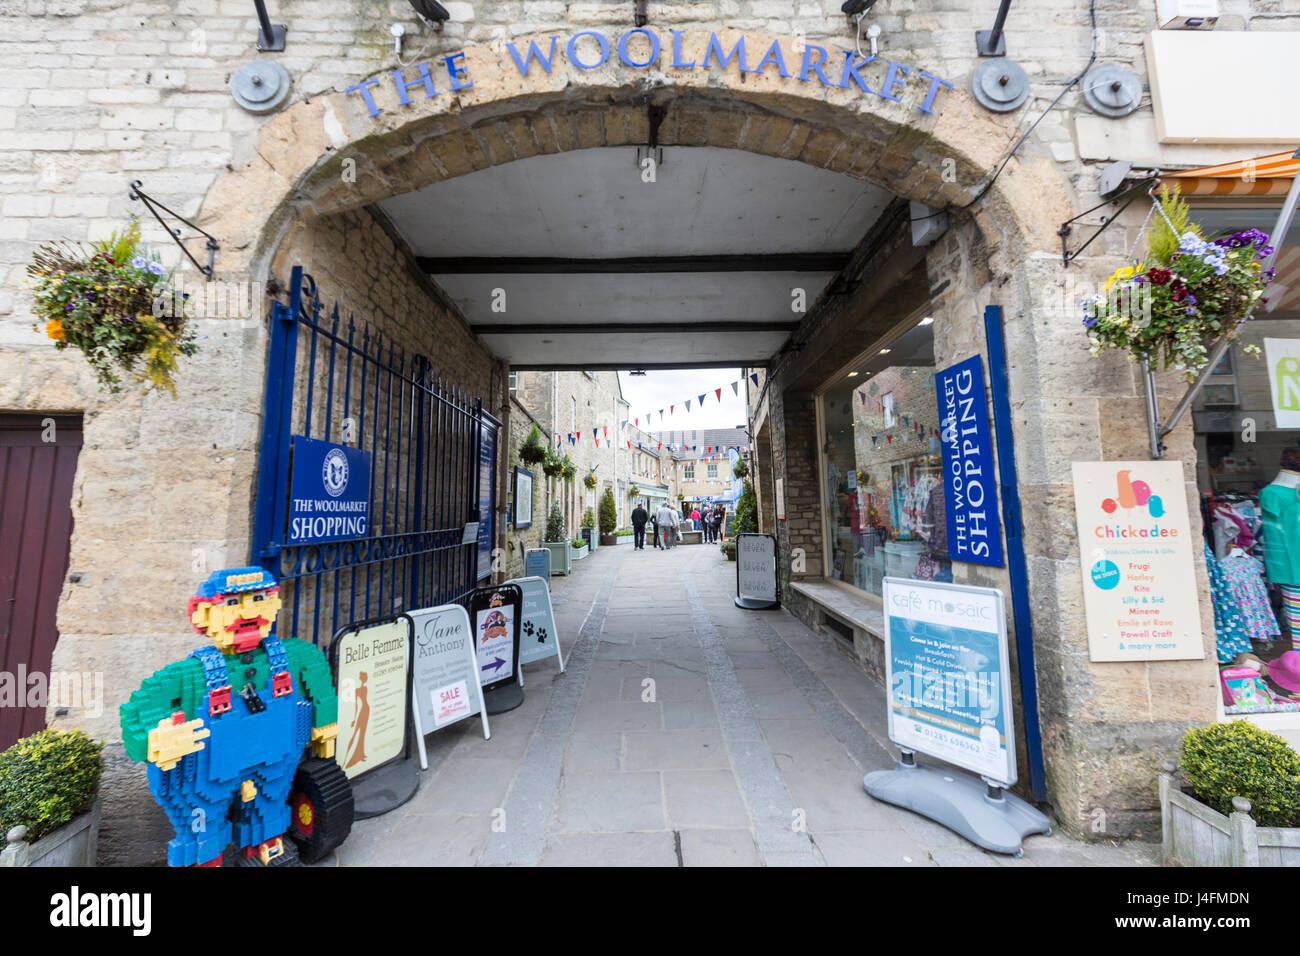 The Wool market entrance, Cirencester, Gloucestershire, England - Stock Image